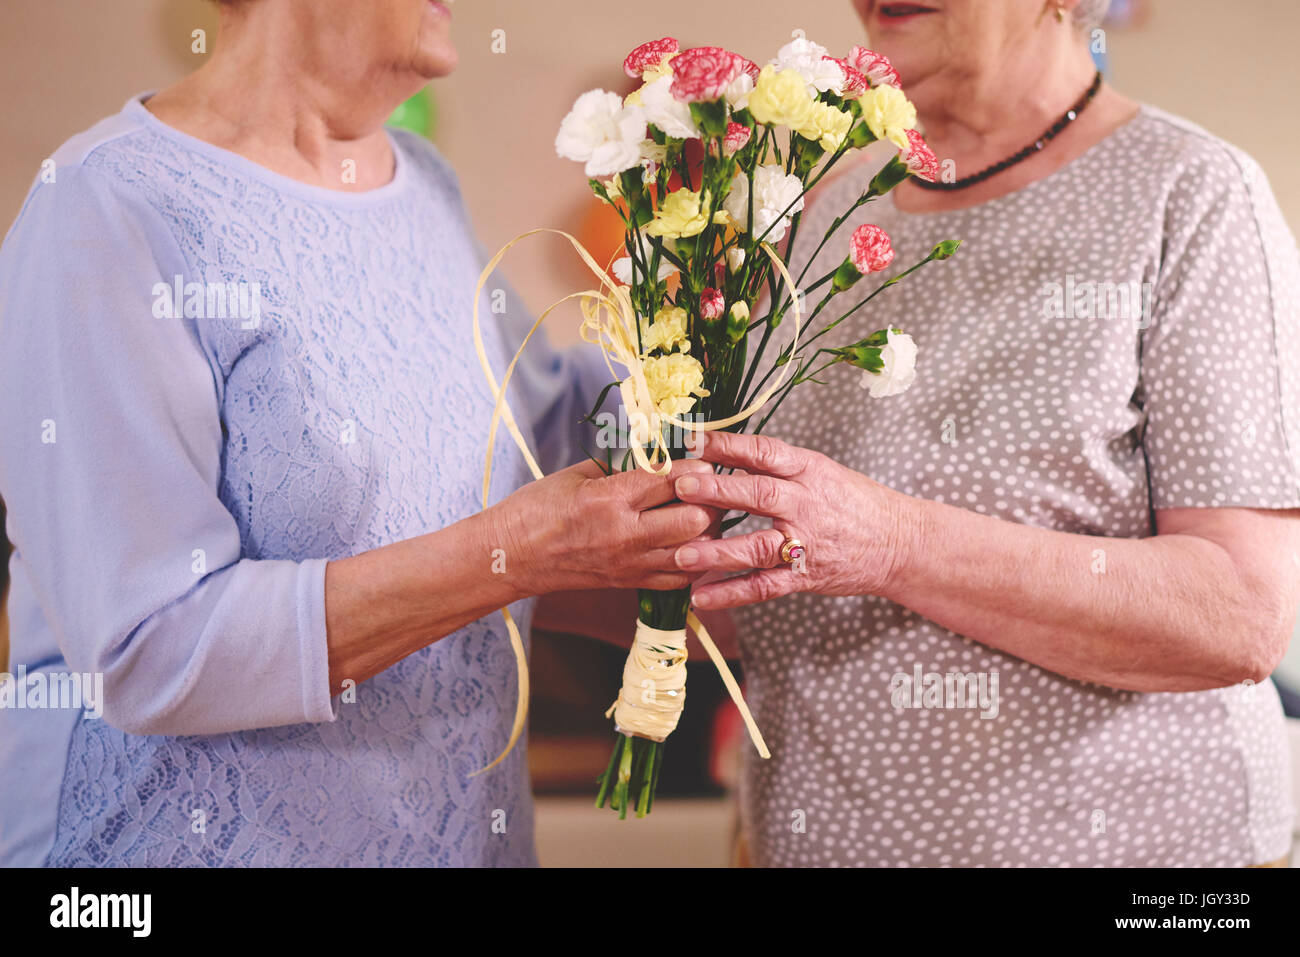 Senior woman giving flowers to friend at birthday party - Stock Image